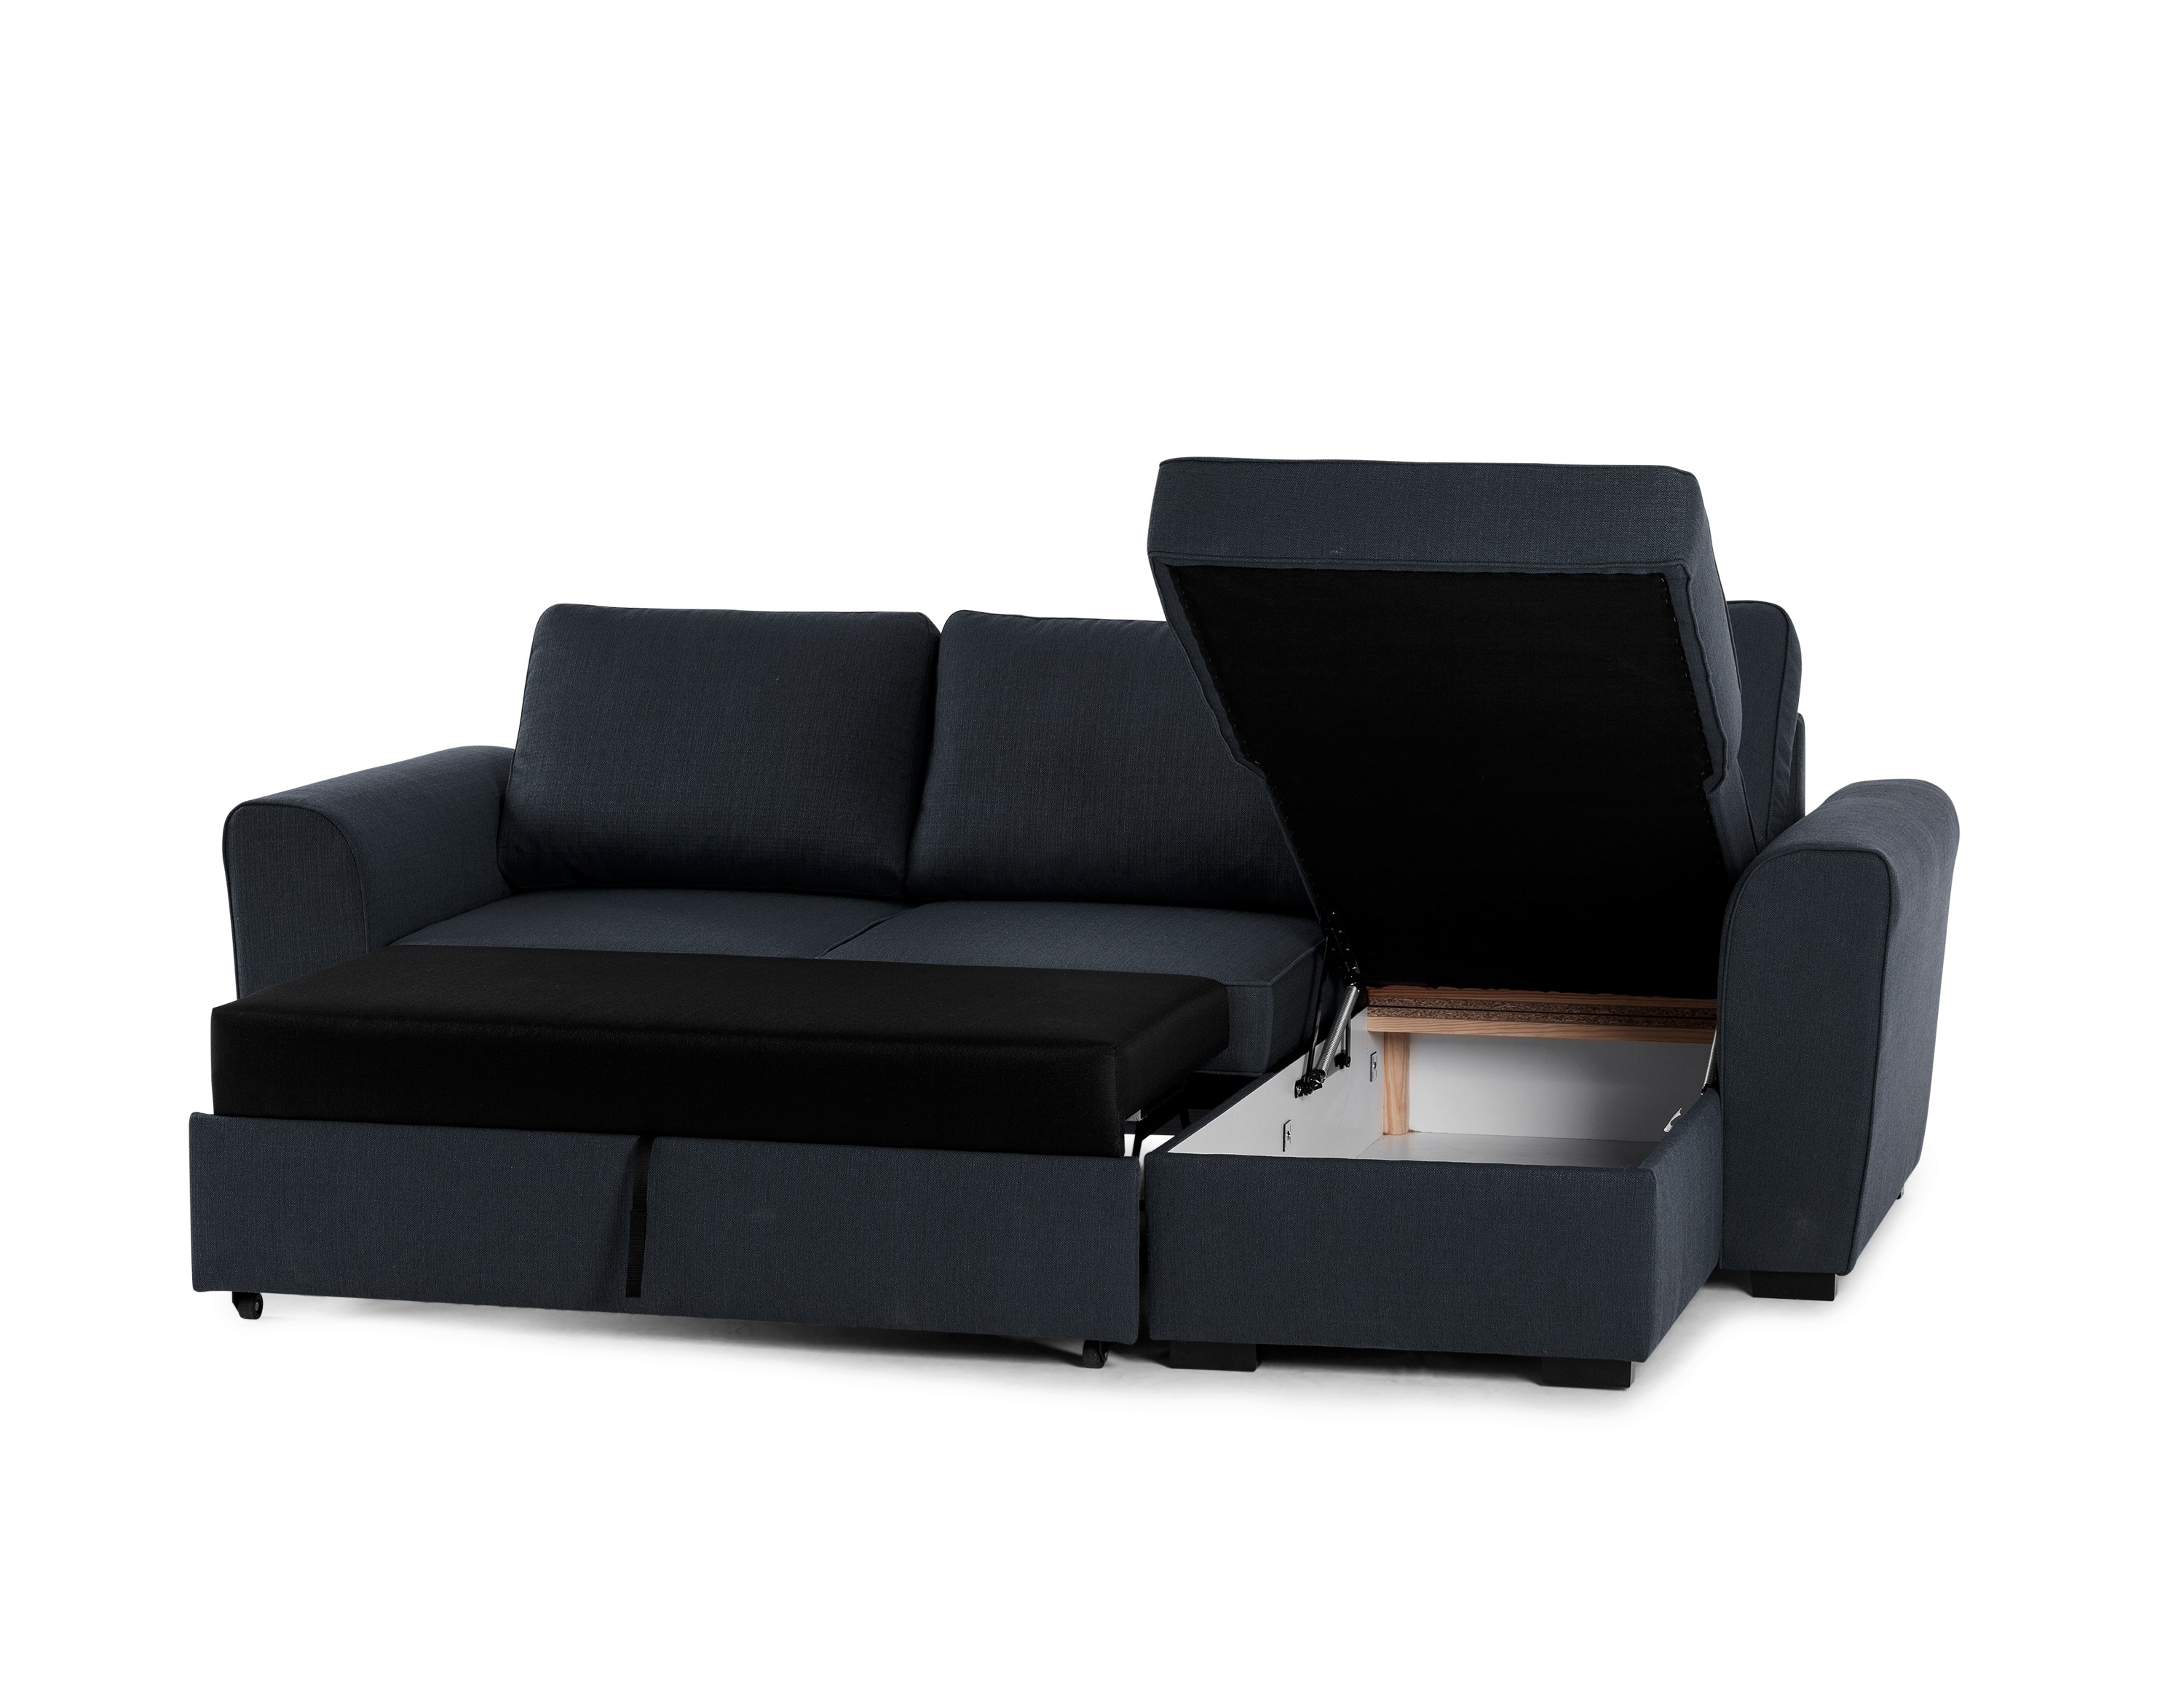 Sofa : Stunning Sectional Sofa Bed Apk 27801 2S 10X8 Cropafhs Pdp With Famous 10X8 Sectional Sofas (View 8 of 20)